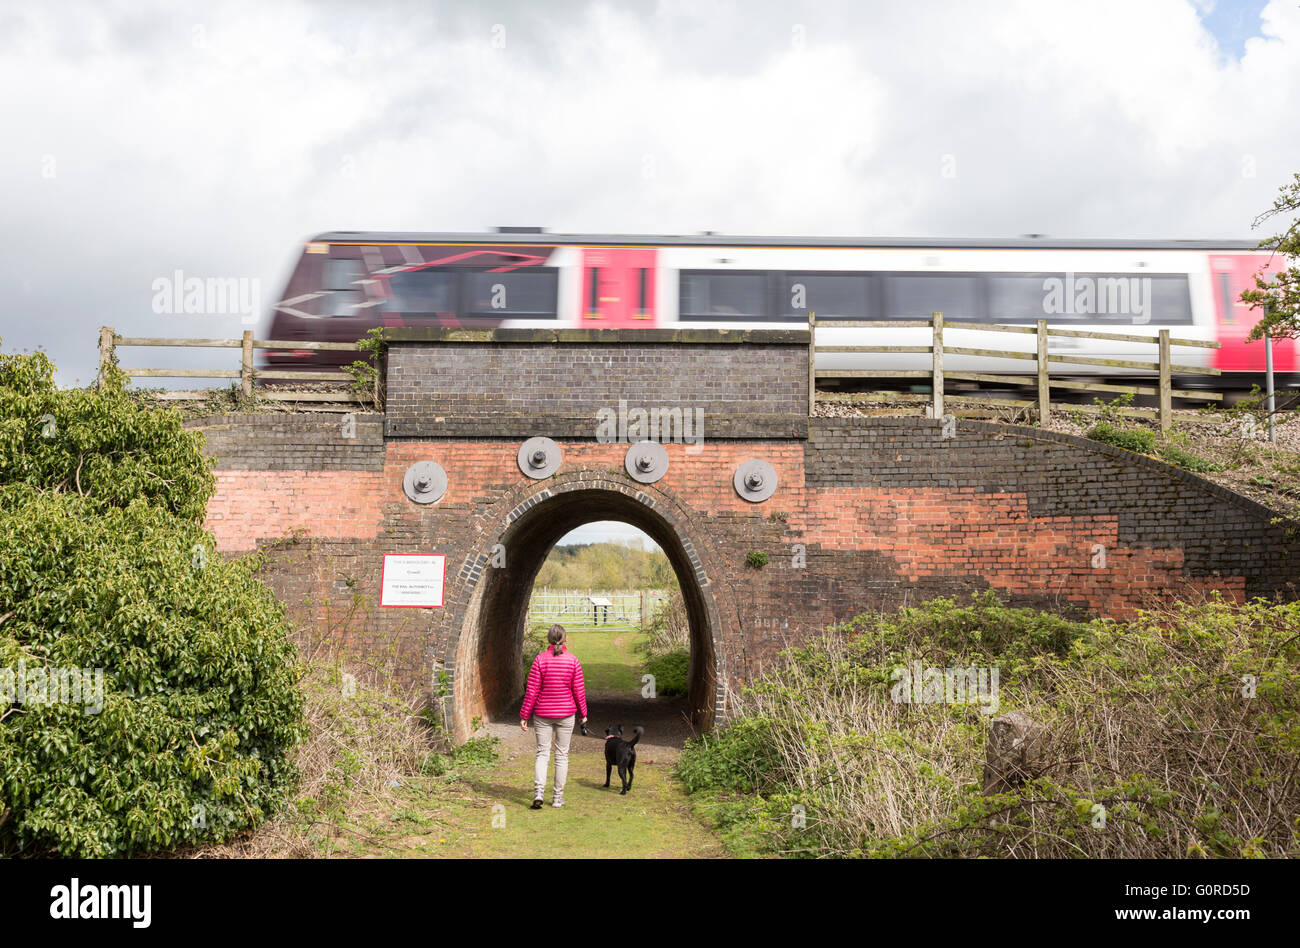 East Midlands train crossing access tunnel between Lichfield and Burton upon Trent, Saffordshire, England, UK - Stock Image